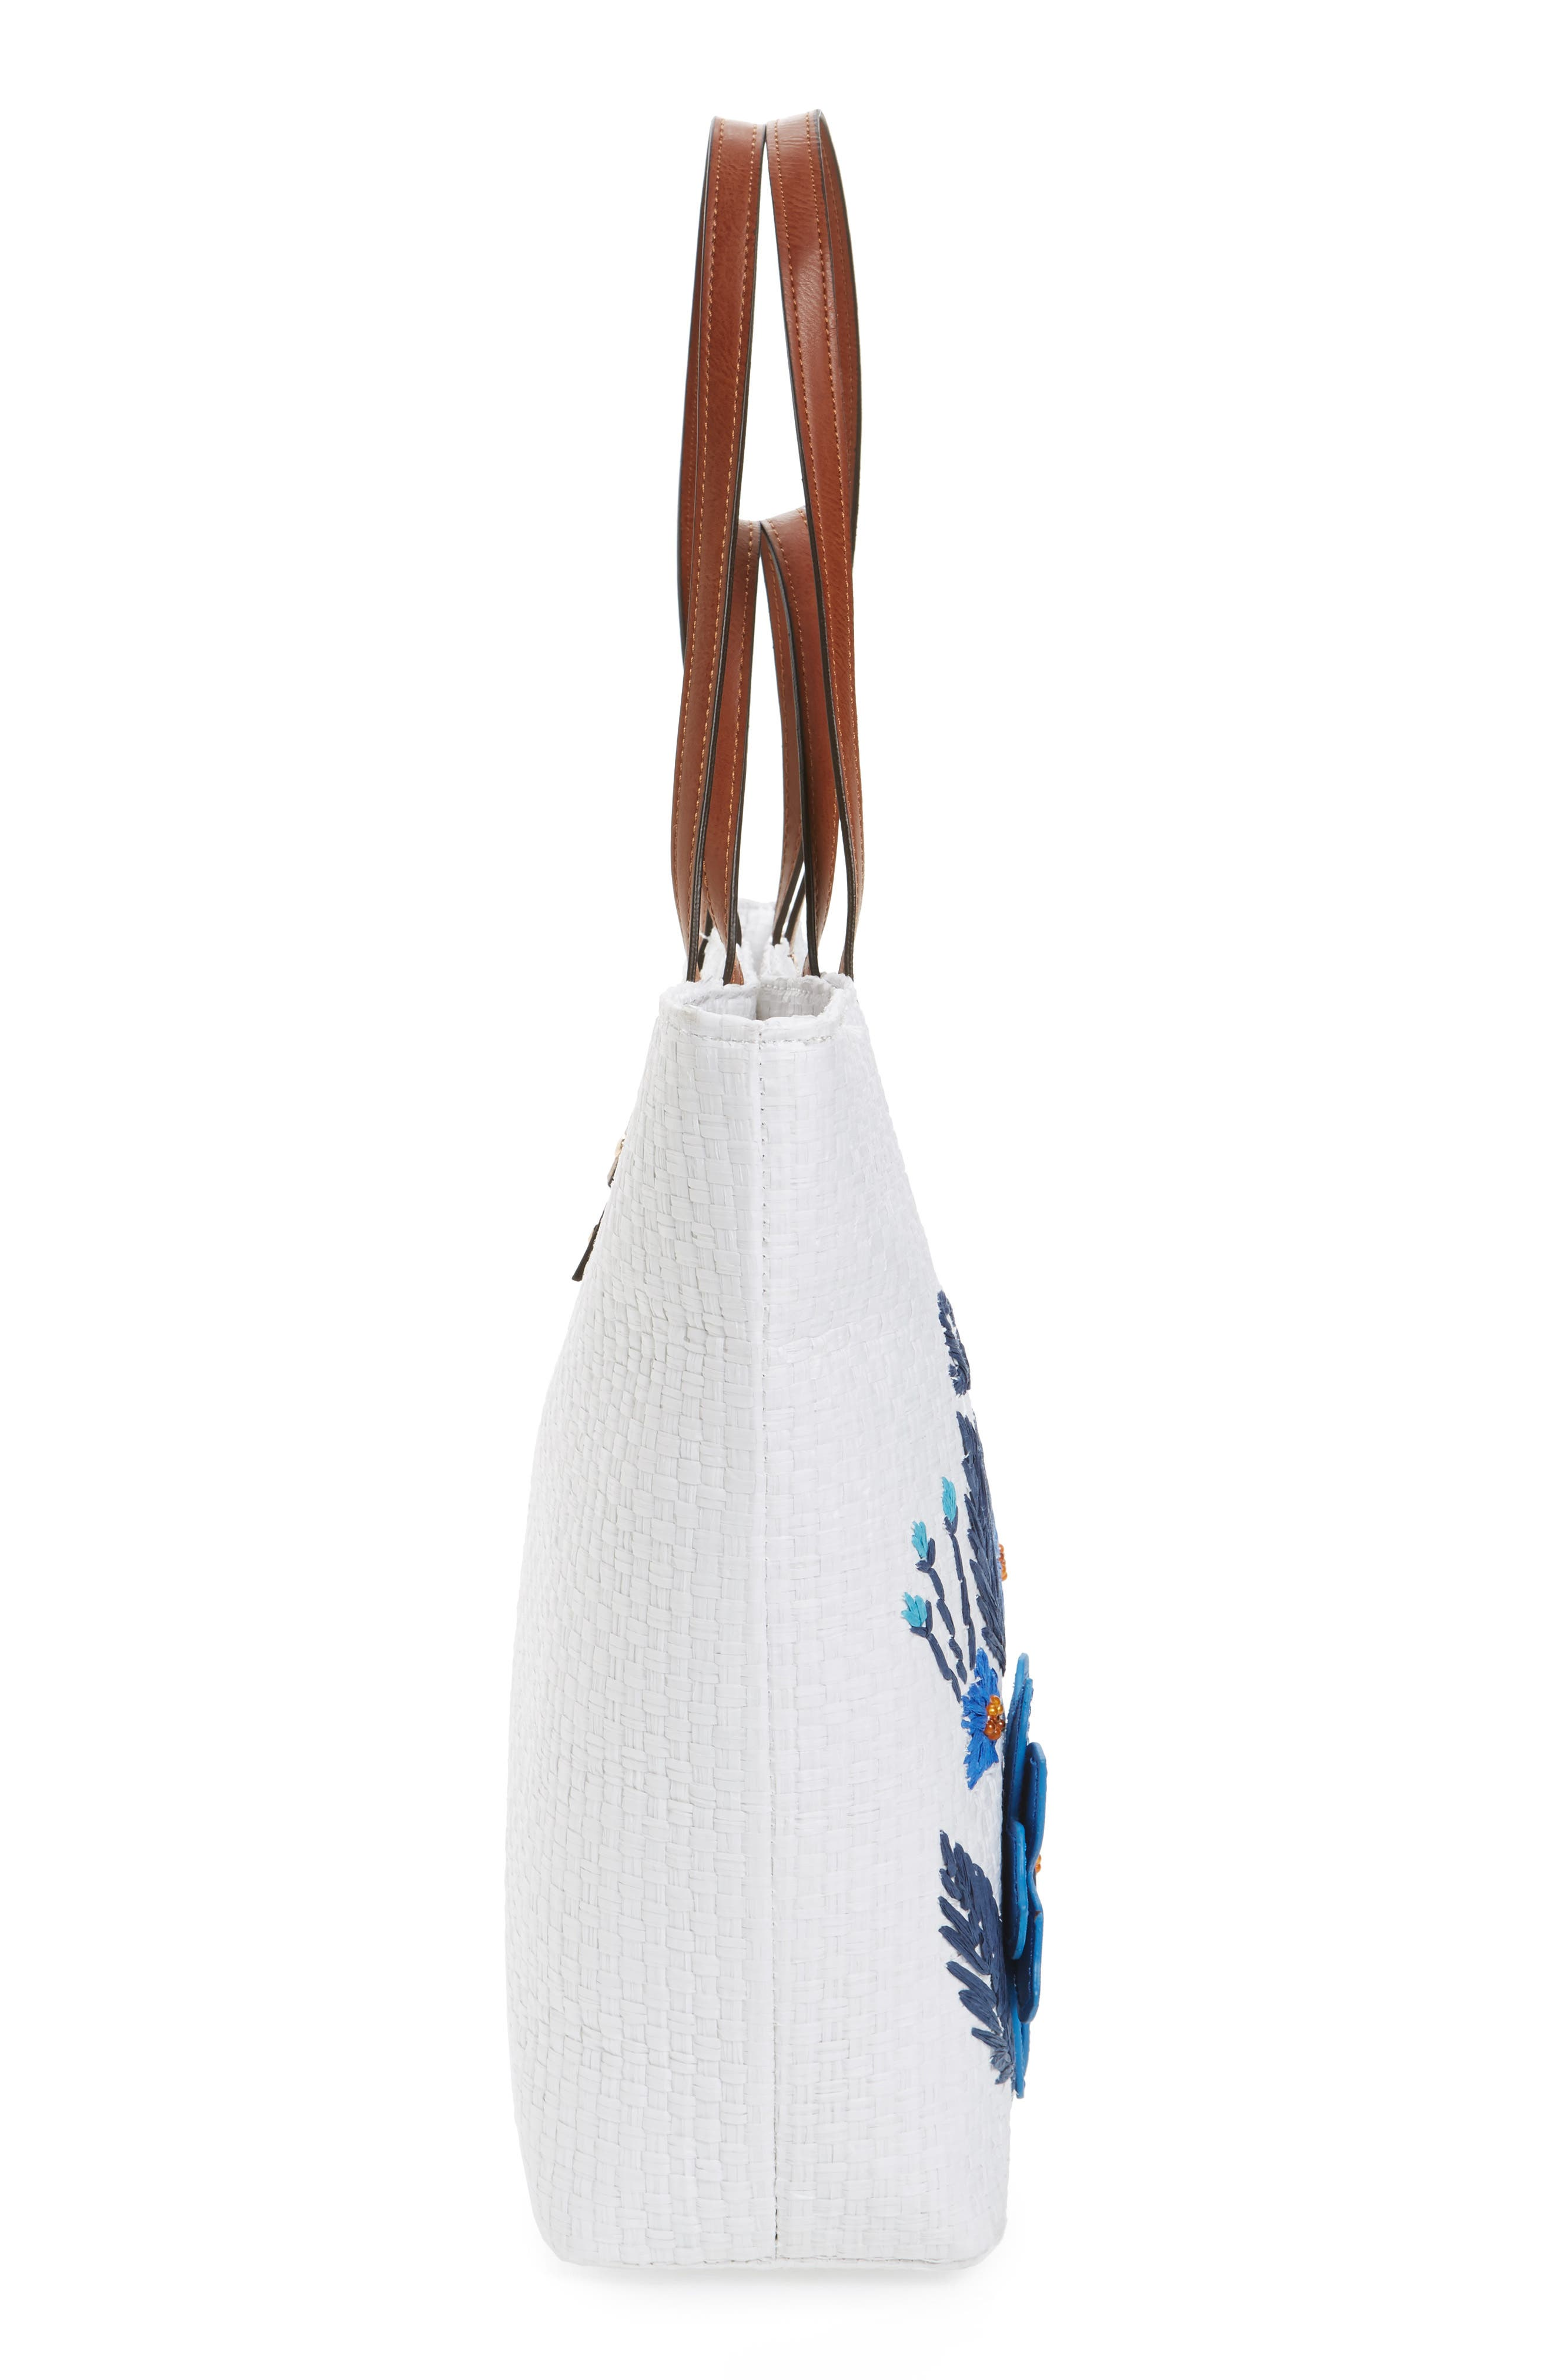 Athen - Seas the Day Embroidered Straw Tote,                             Alternate thumbnail 5, color,                             400